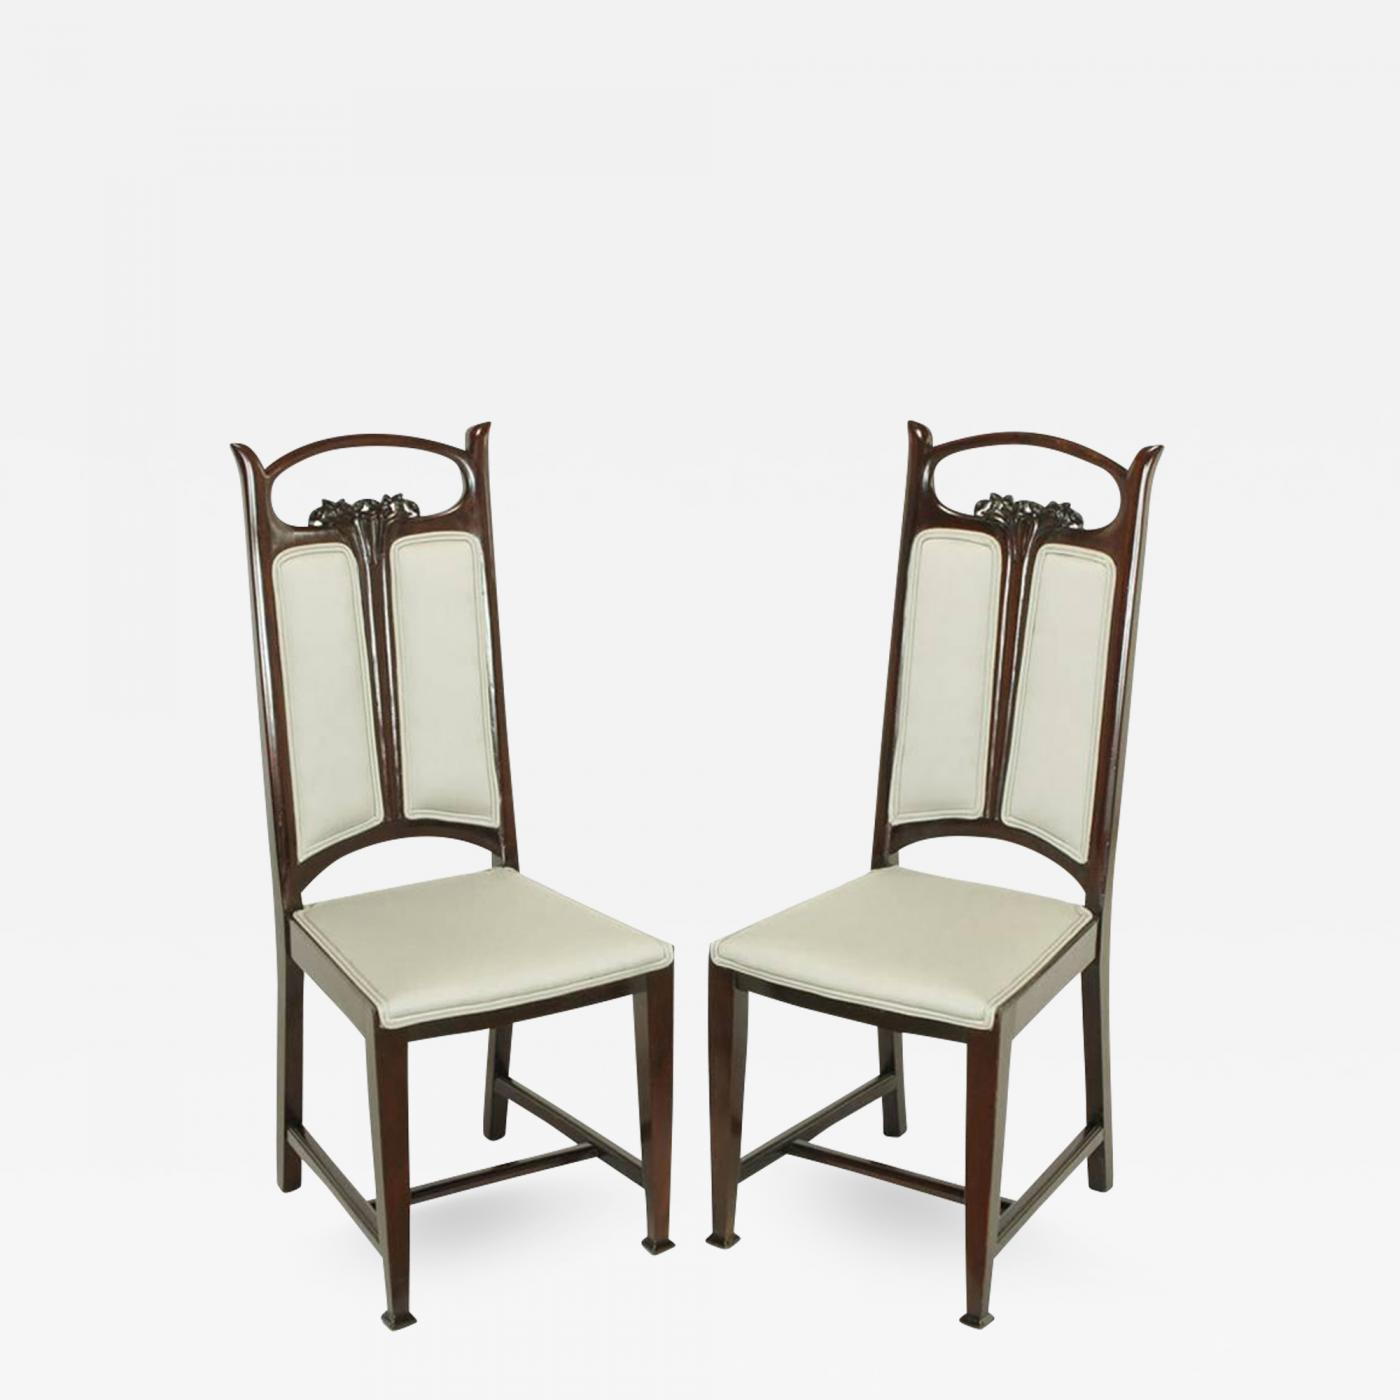 Pair Of Art Nouveau Mahogany Side Chairs With Dove Grey Wool